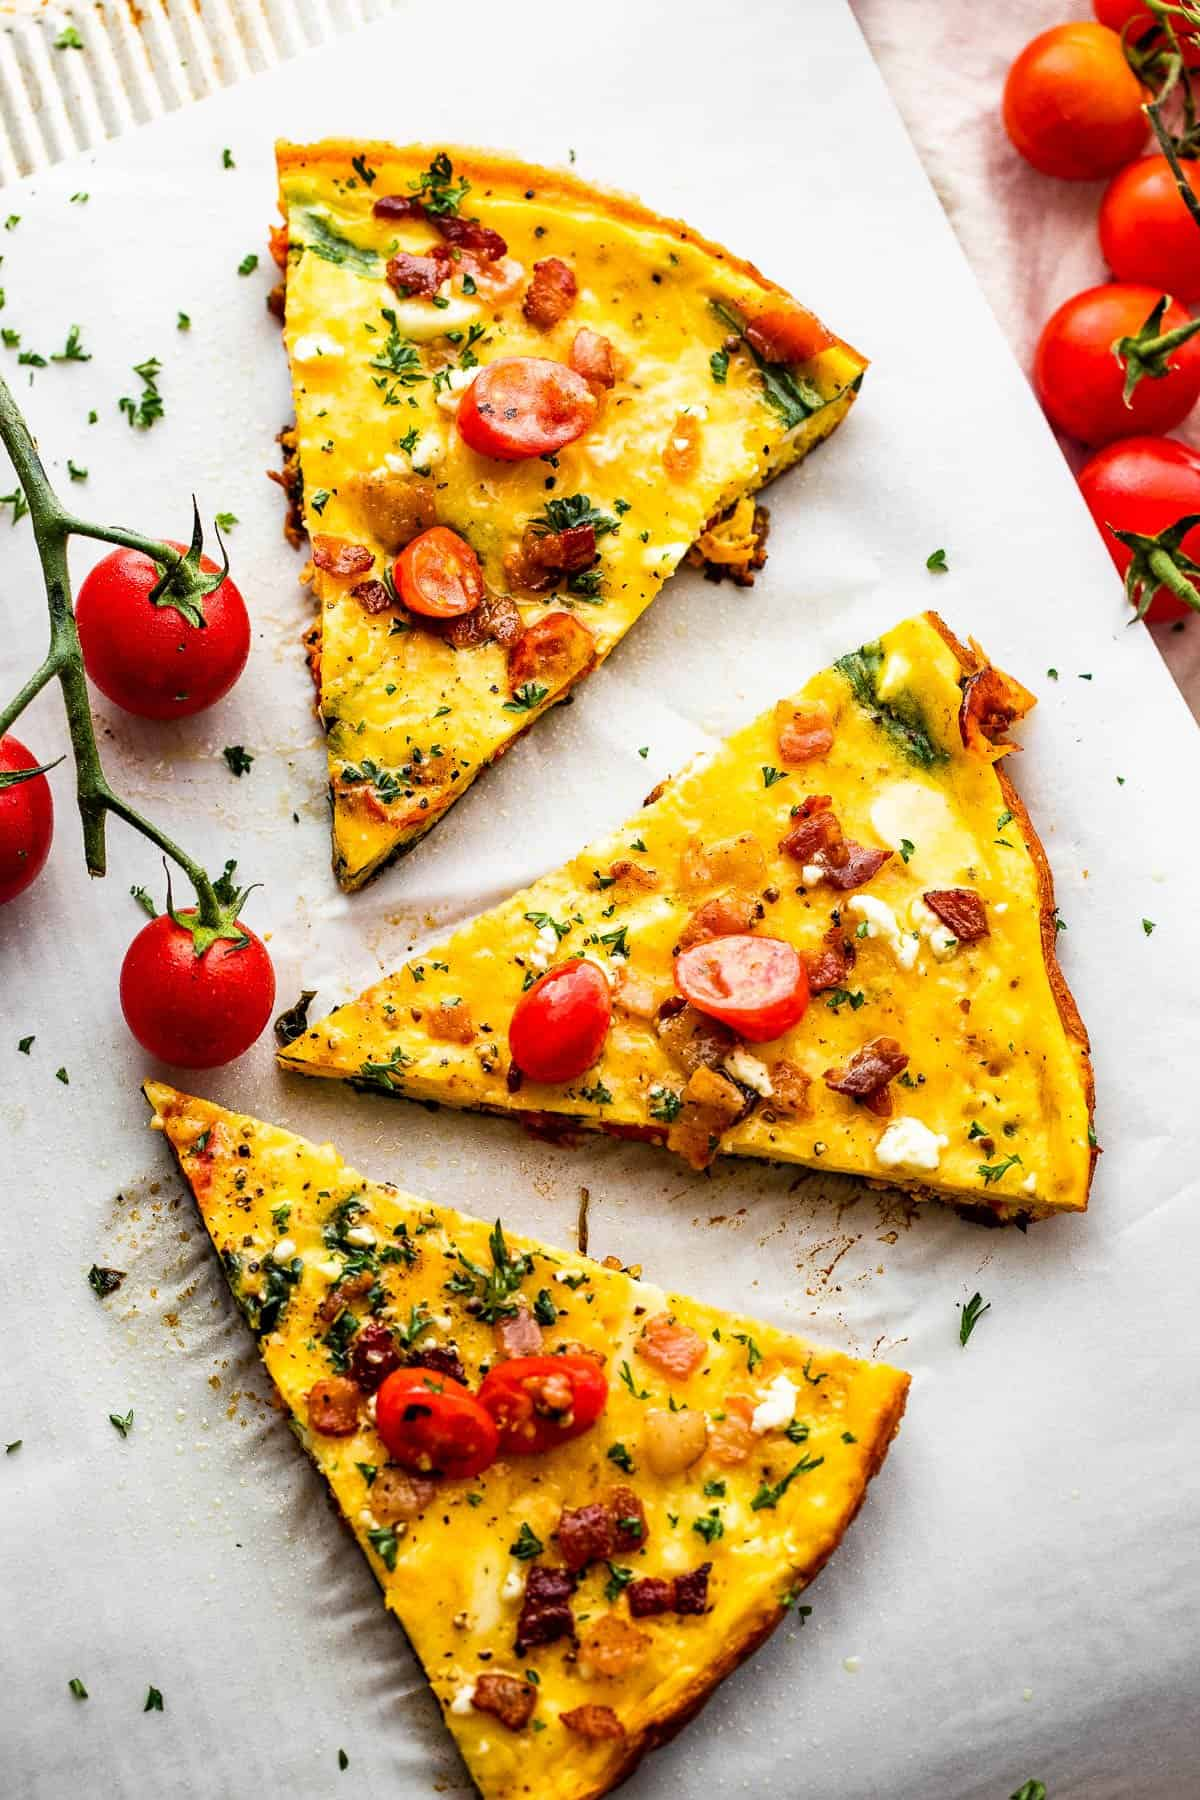 three slices of bacon tomato frittata arranged on a plate